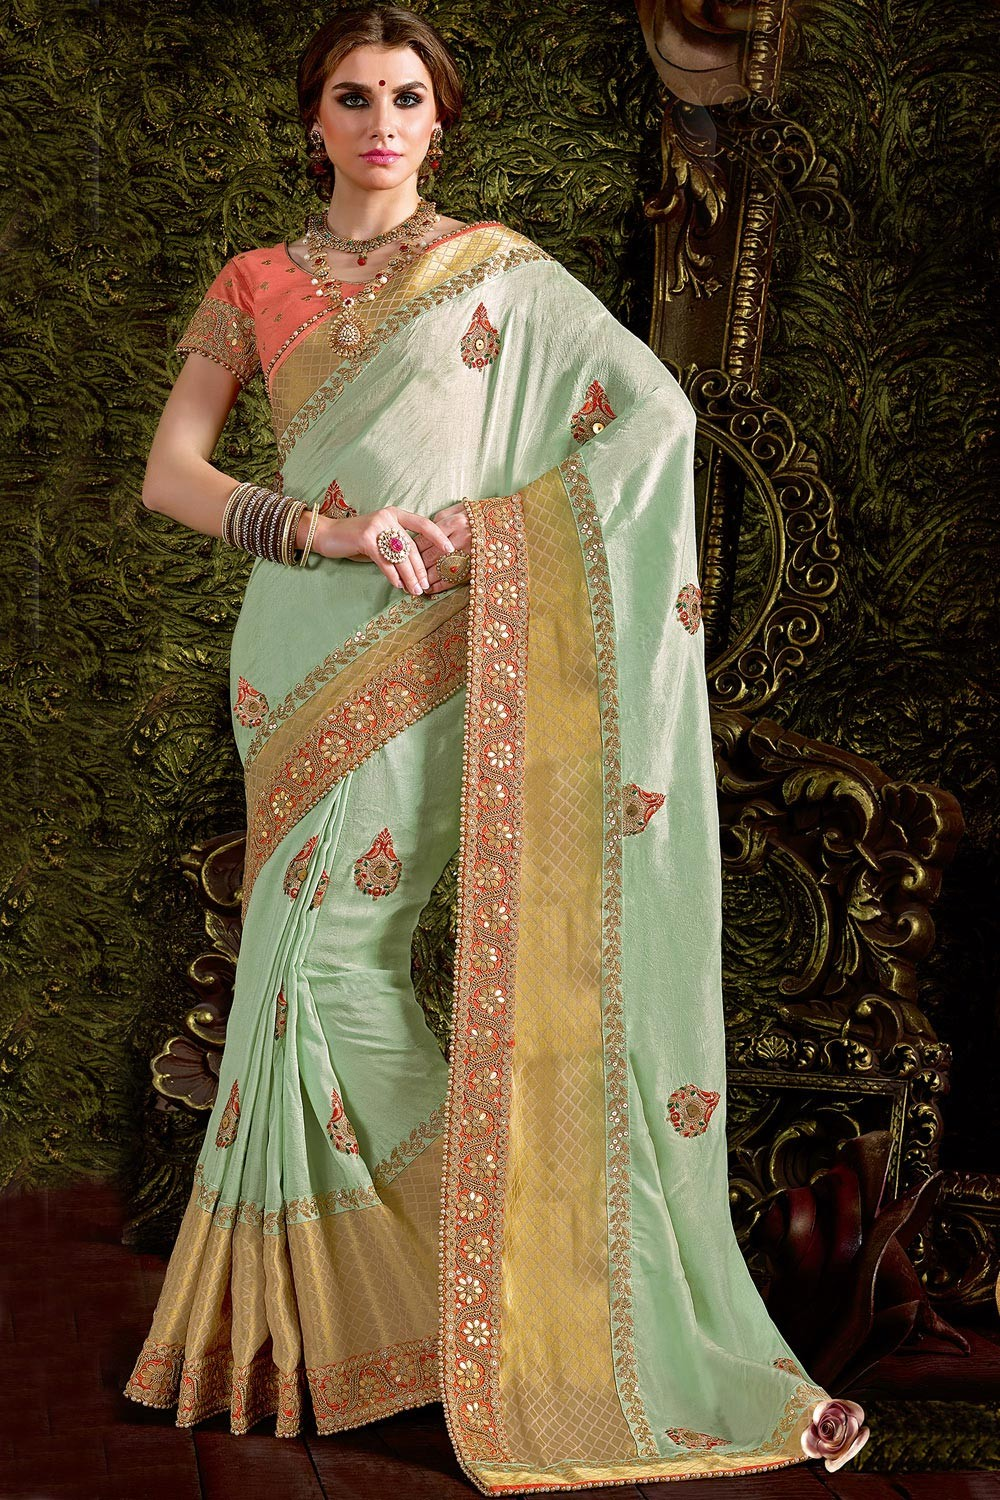 Paaneri Designer Mint Blue Color Embroidery Border Viscos Saree-Product Code-17119440204